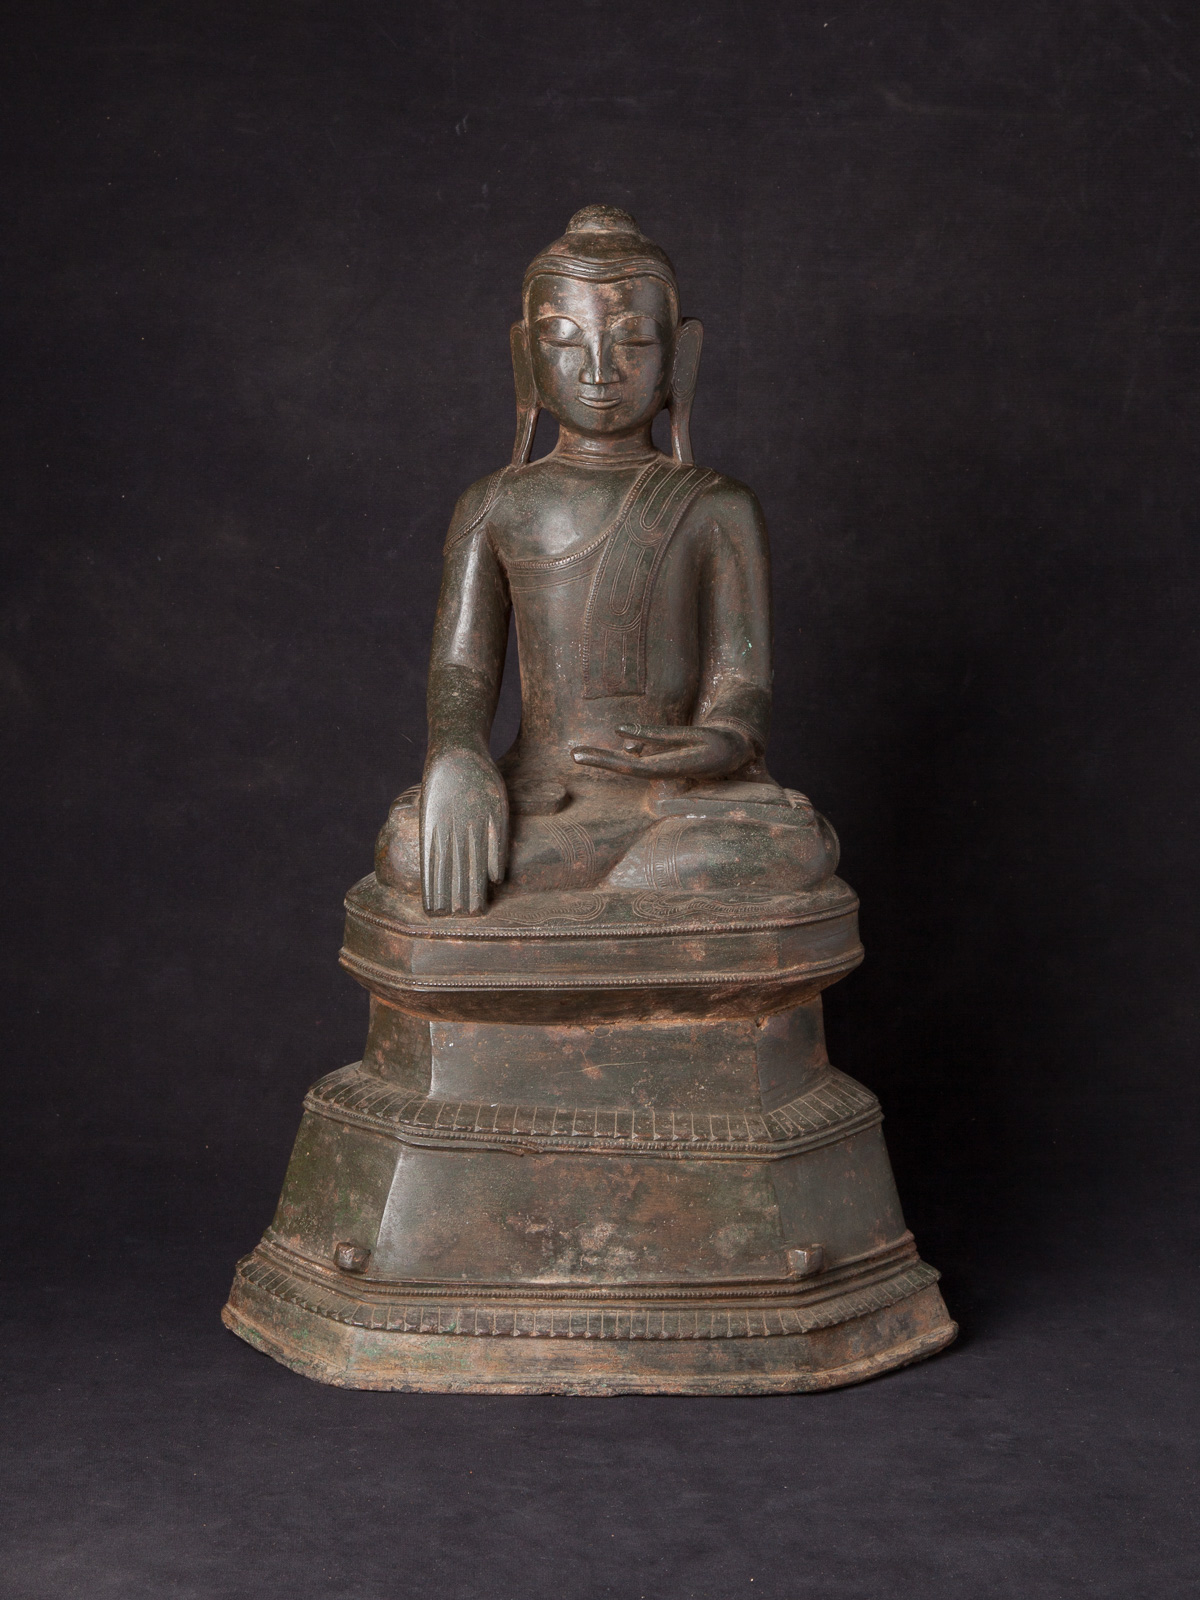 Special antique bronze Shan Buddha statue from Burma